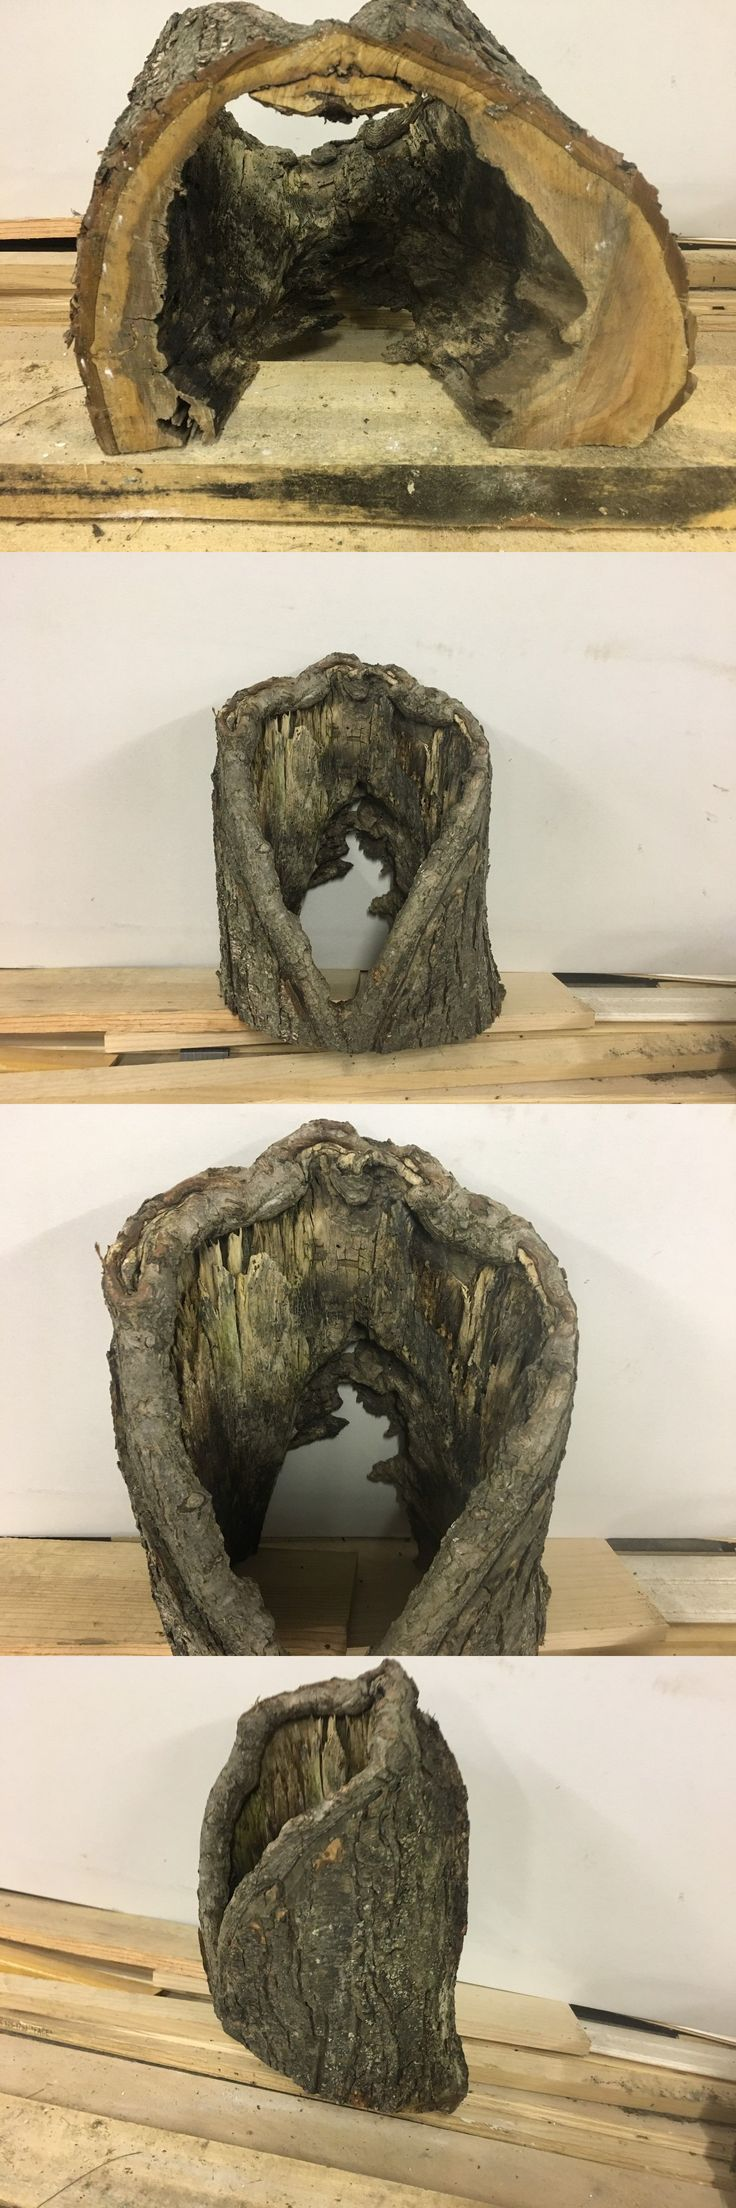 Books and Video 73993: Hollow 13Inch Log Hole Wood Taxidermy Display Rustic Lumber Picture Shelf -> BUY IT NOW ONLY: $49.99 on eBay!